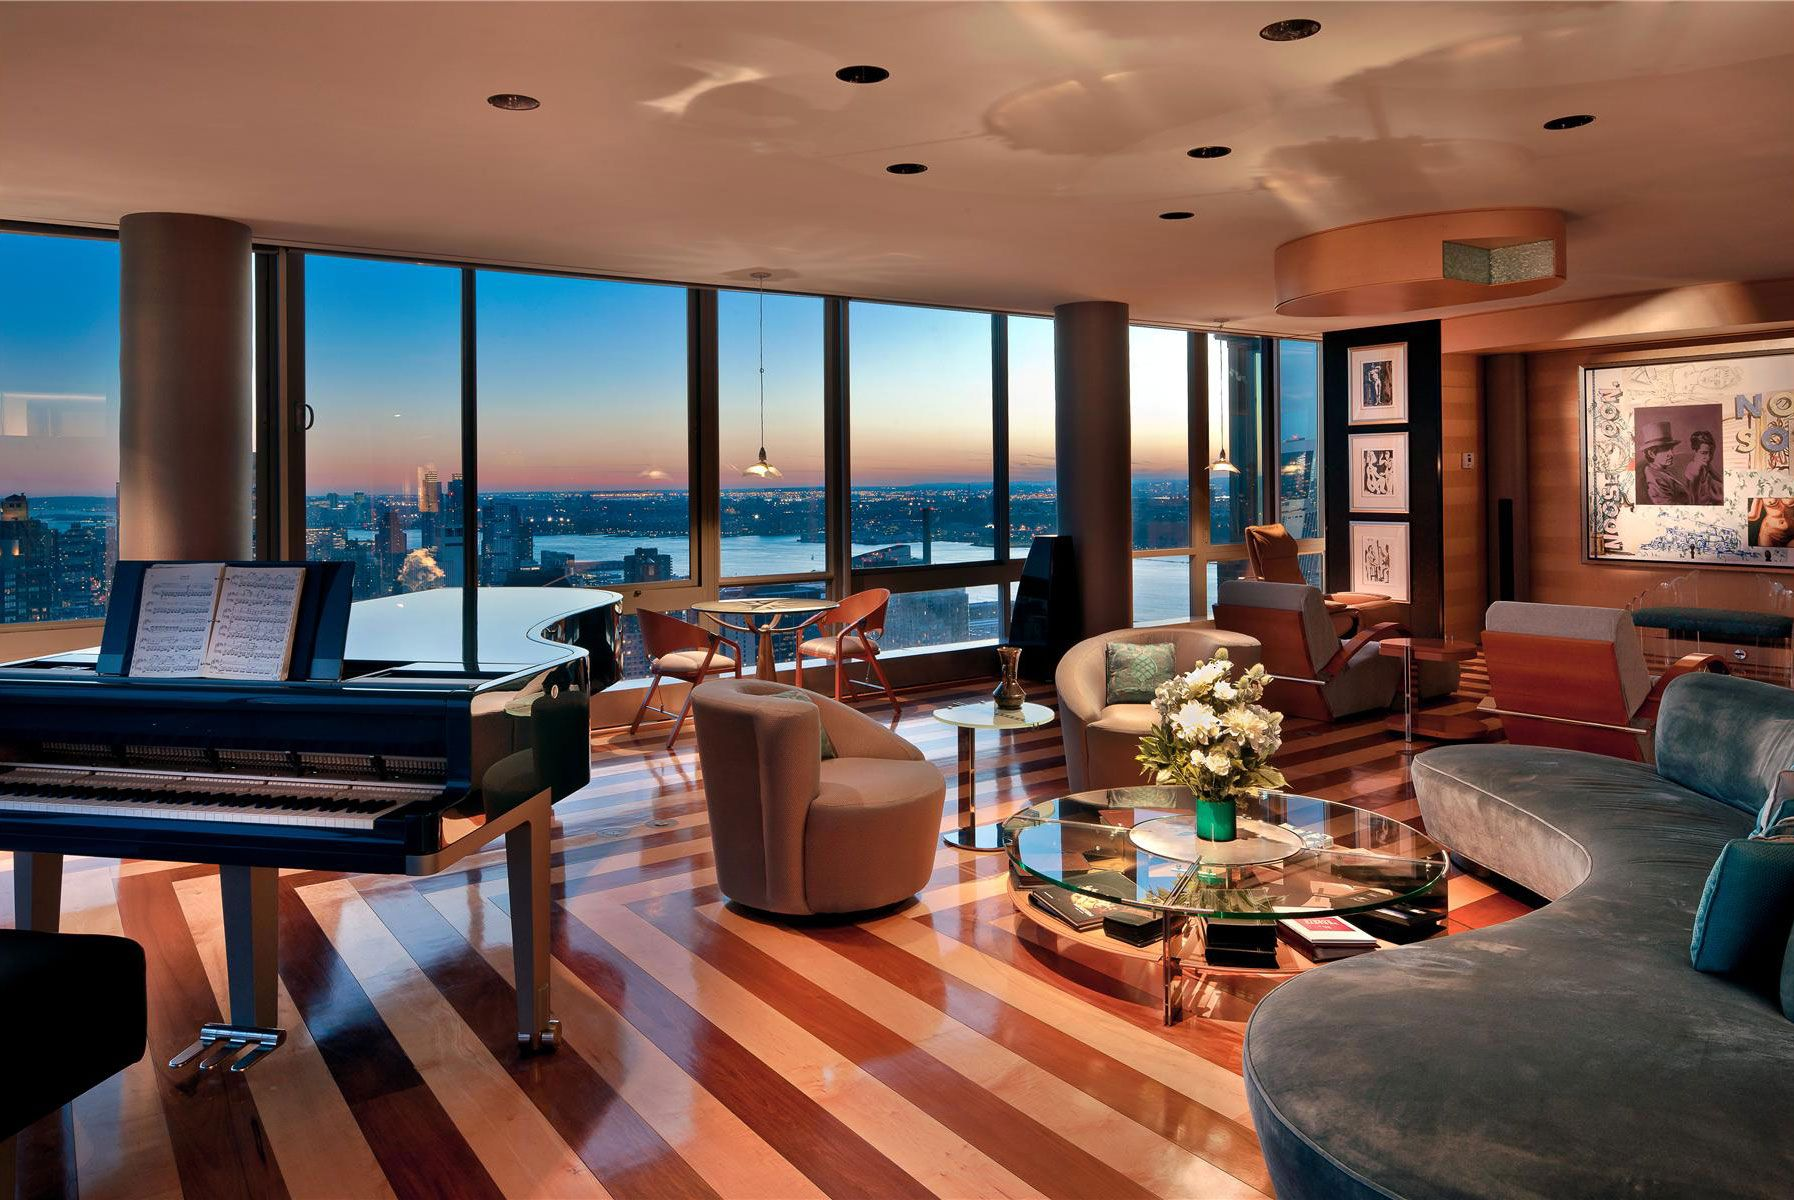 The gartner penthouse for sale in new york city for Apartments nyc for sale